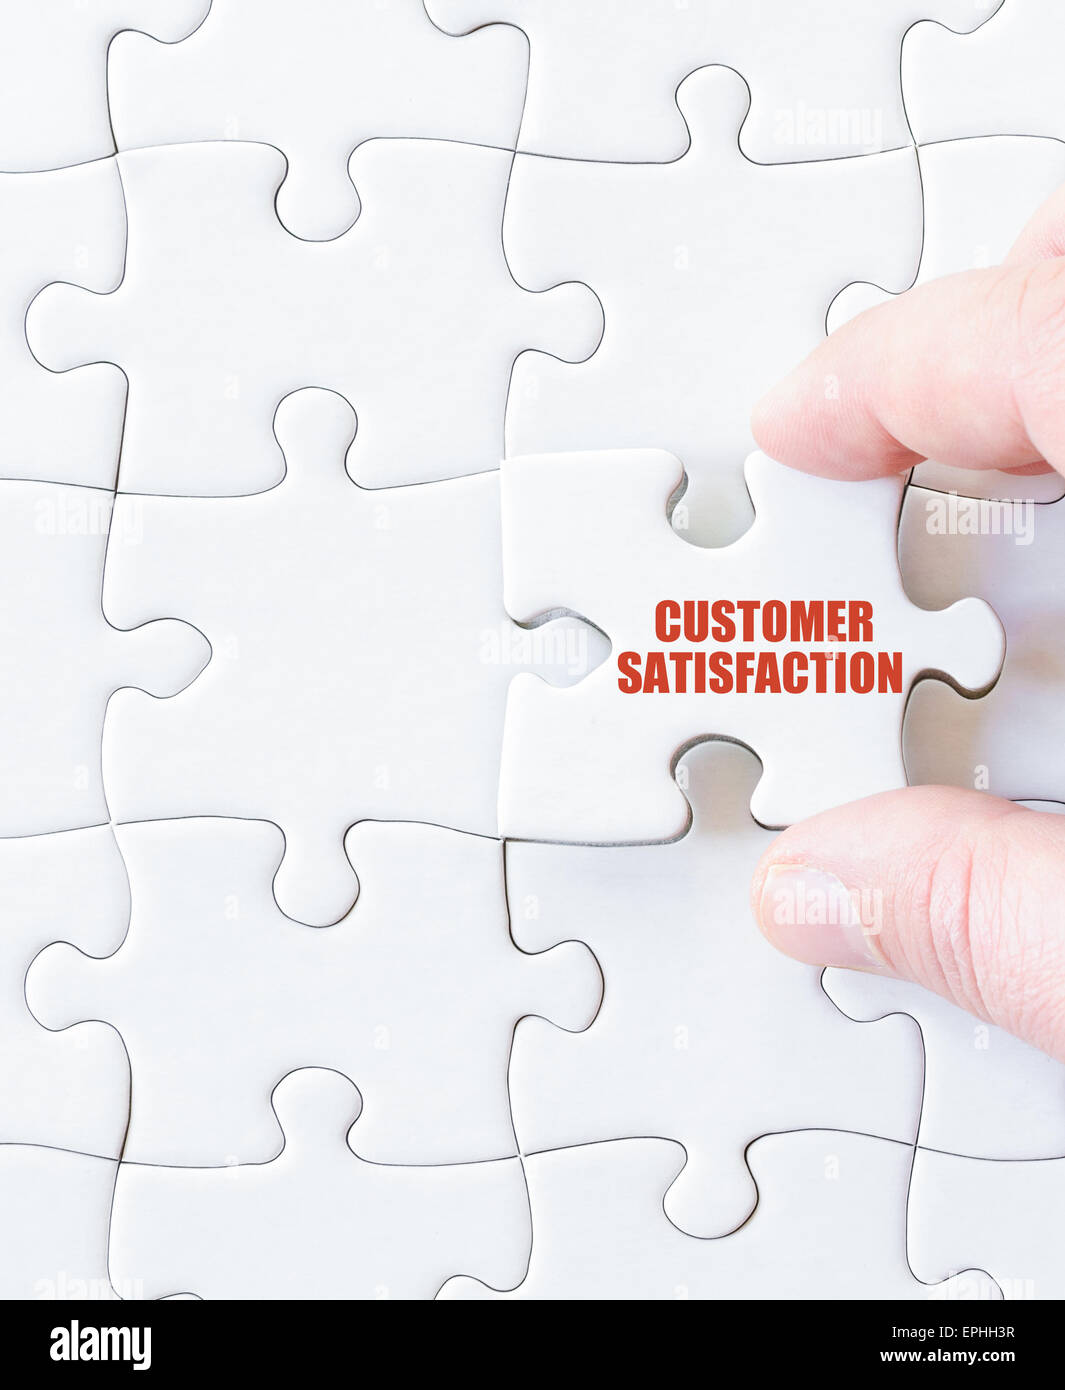 Missing jigsaw puzzle piece with words  Customer Satisfaction. Business concept image for completing the puzzle. - Stock Image